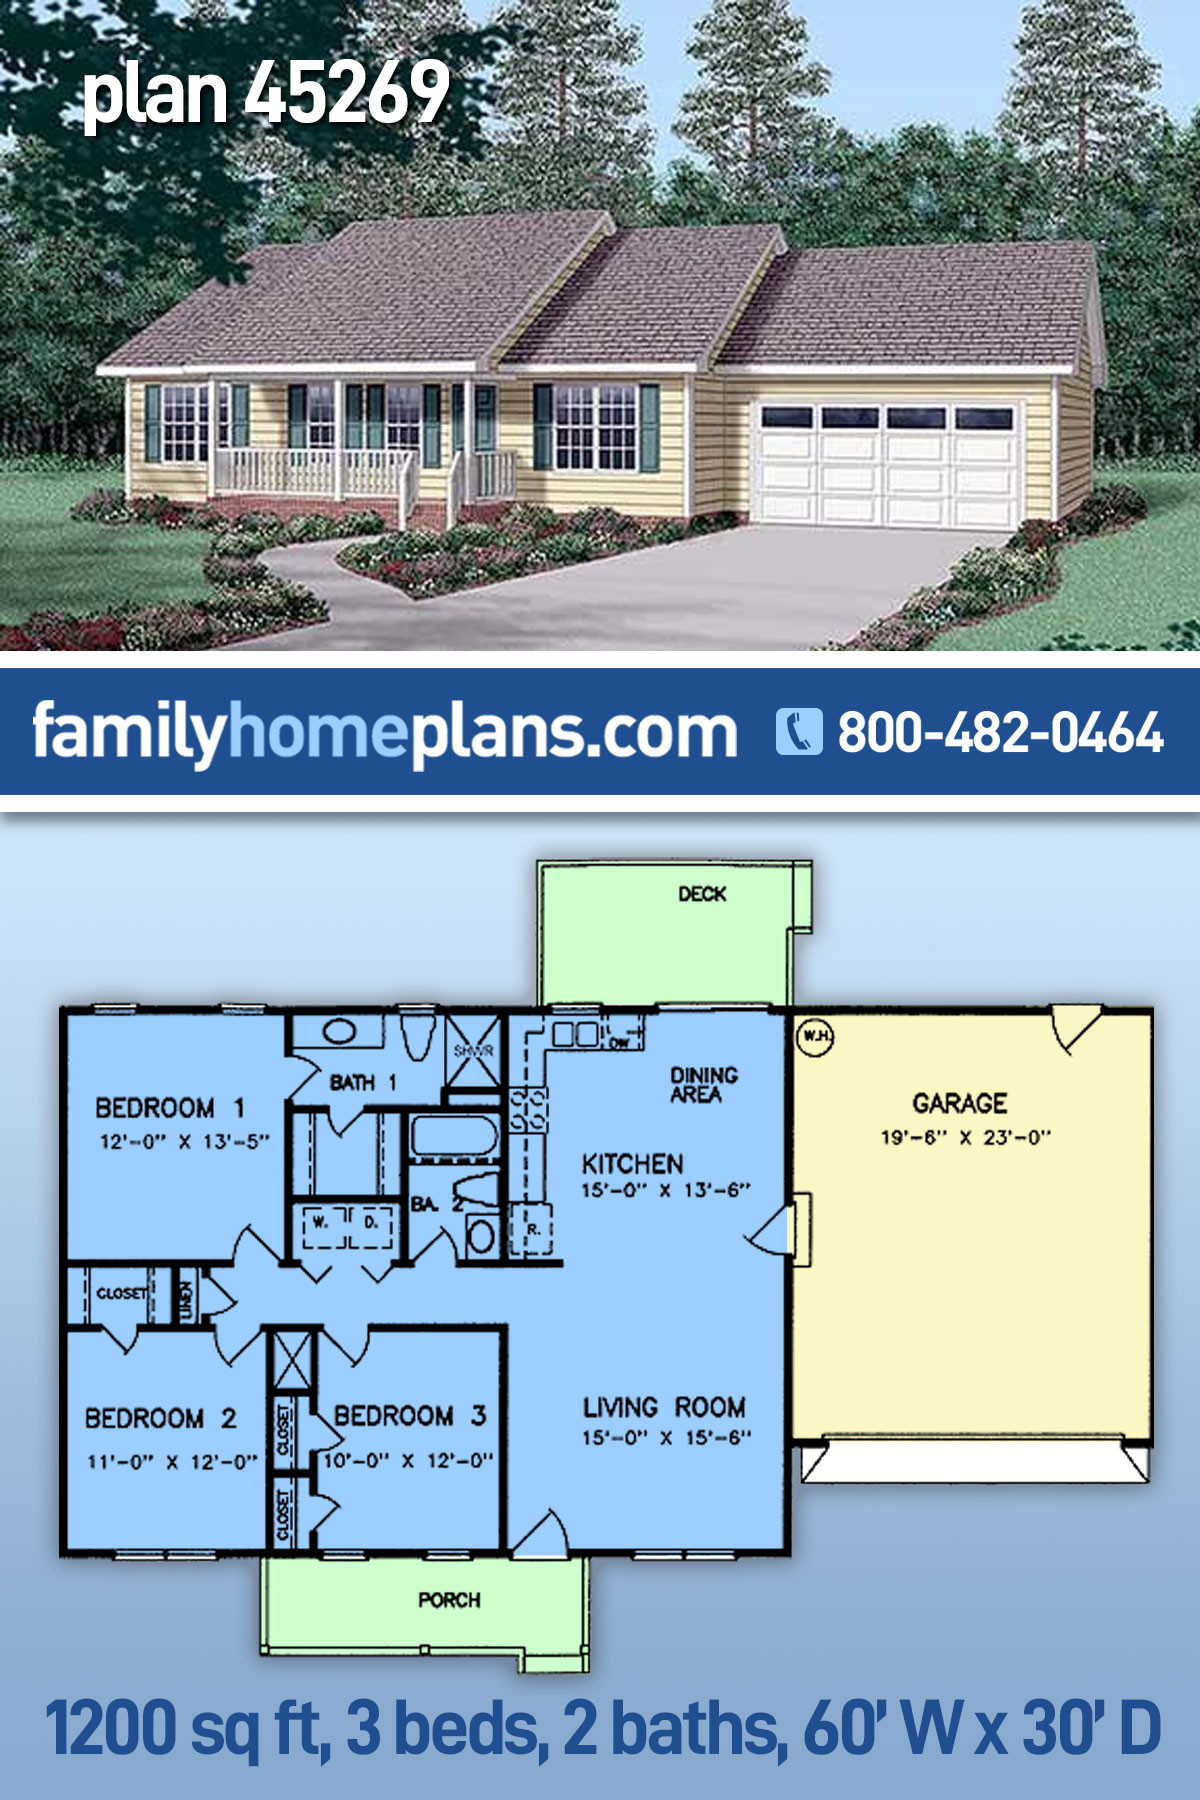 Ranch House Plan 45269 with 3 Beds, 2 Baths, 2 Car Garage